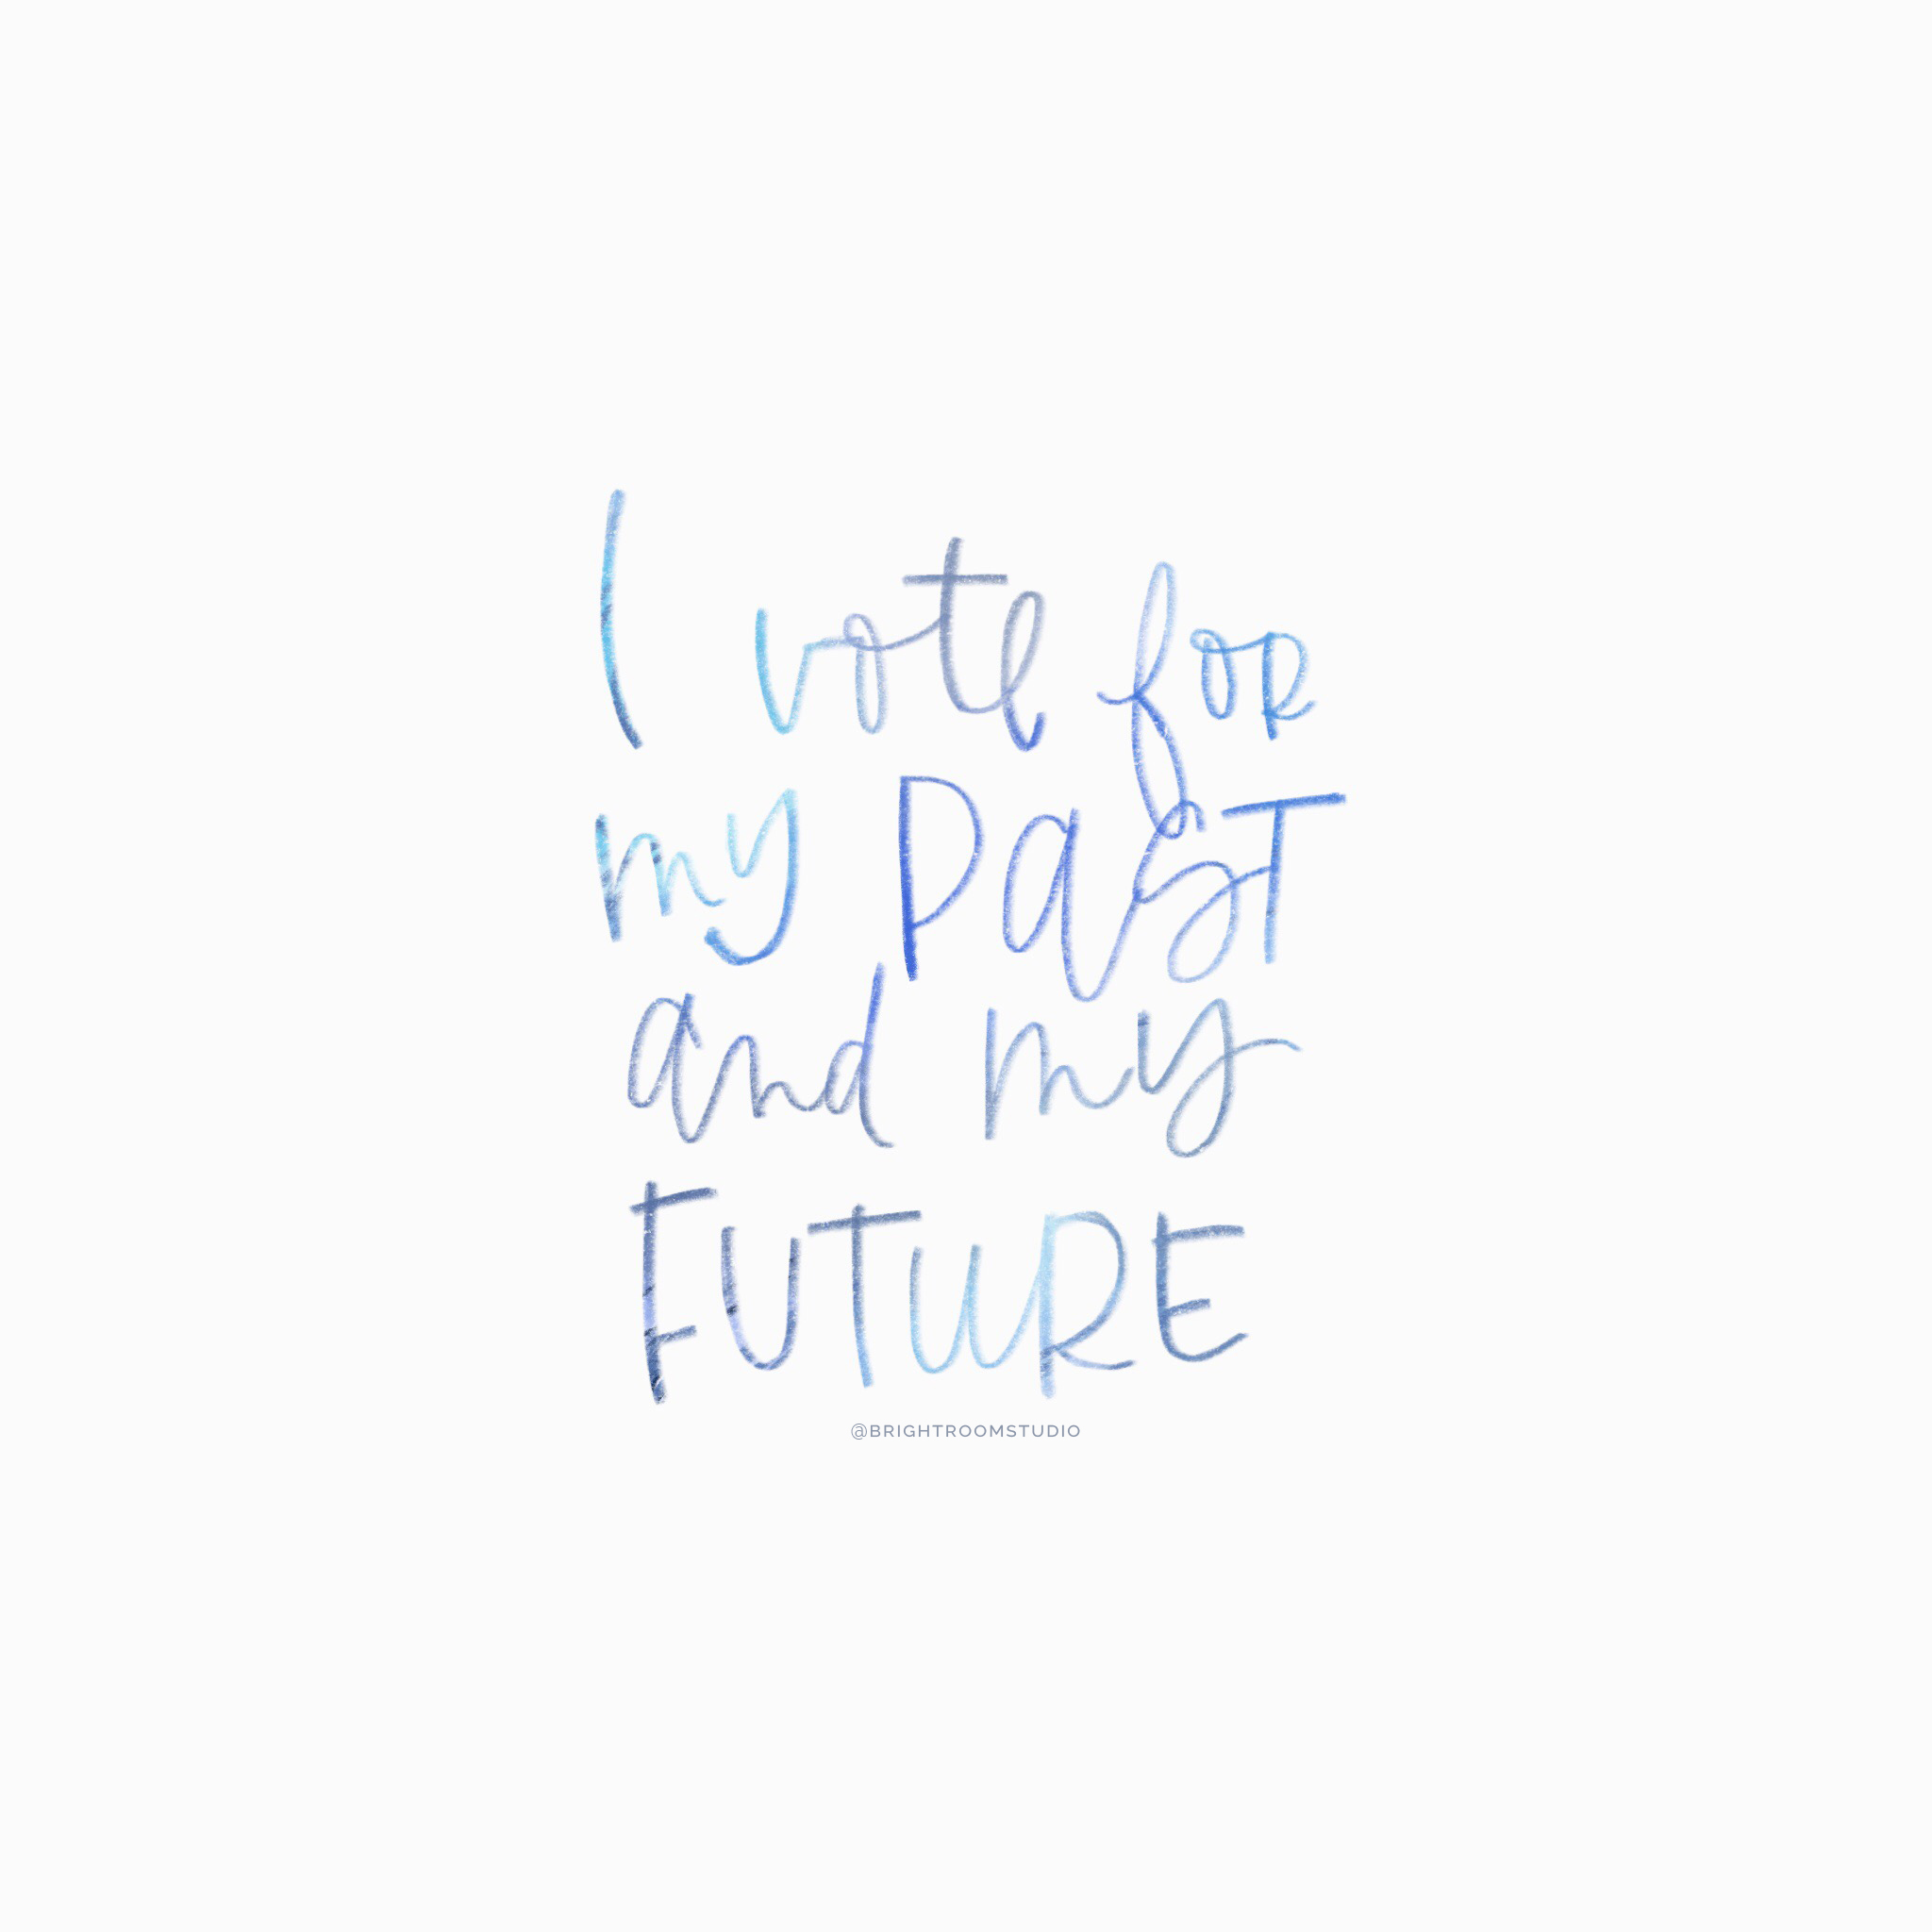 Brush lettering quote about voting